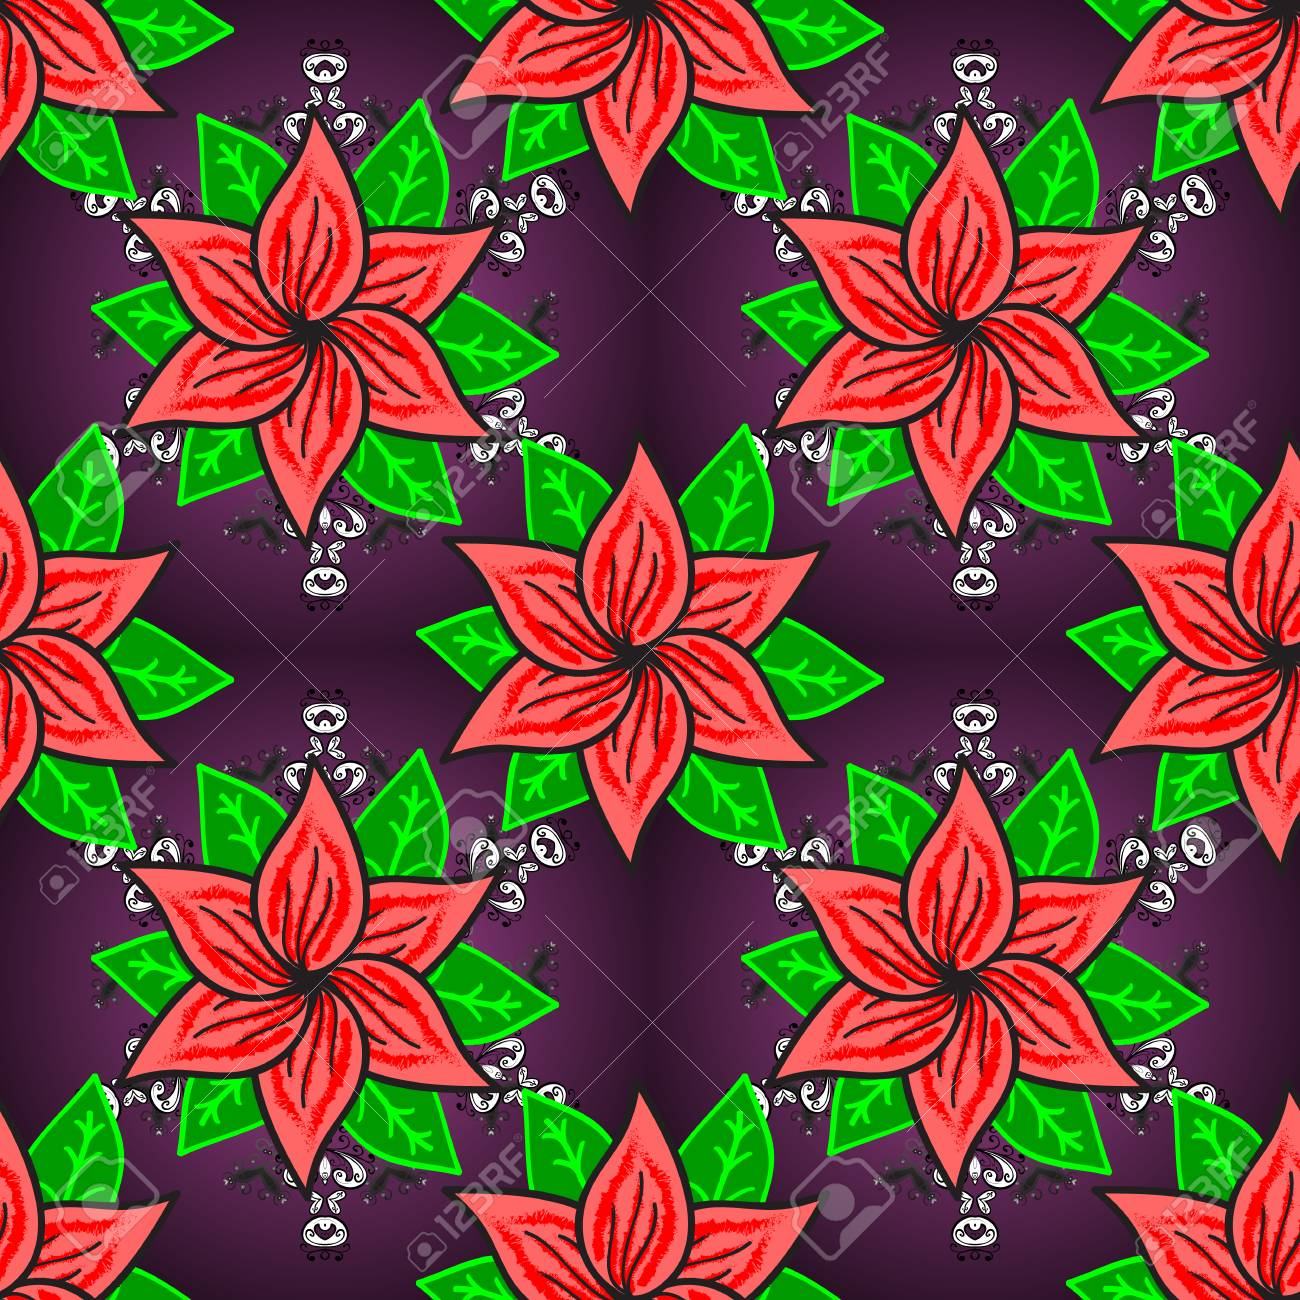 Modern Floral Background The Elegant The Template For Fashion